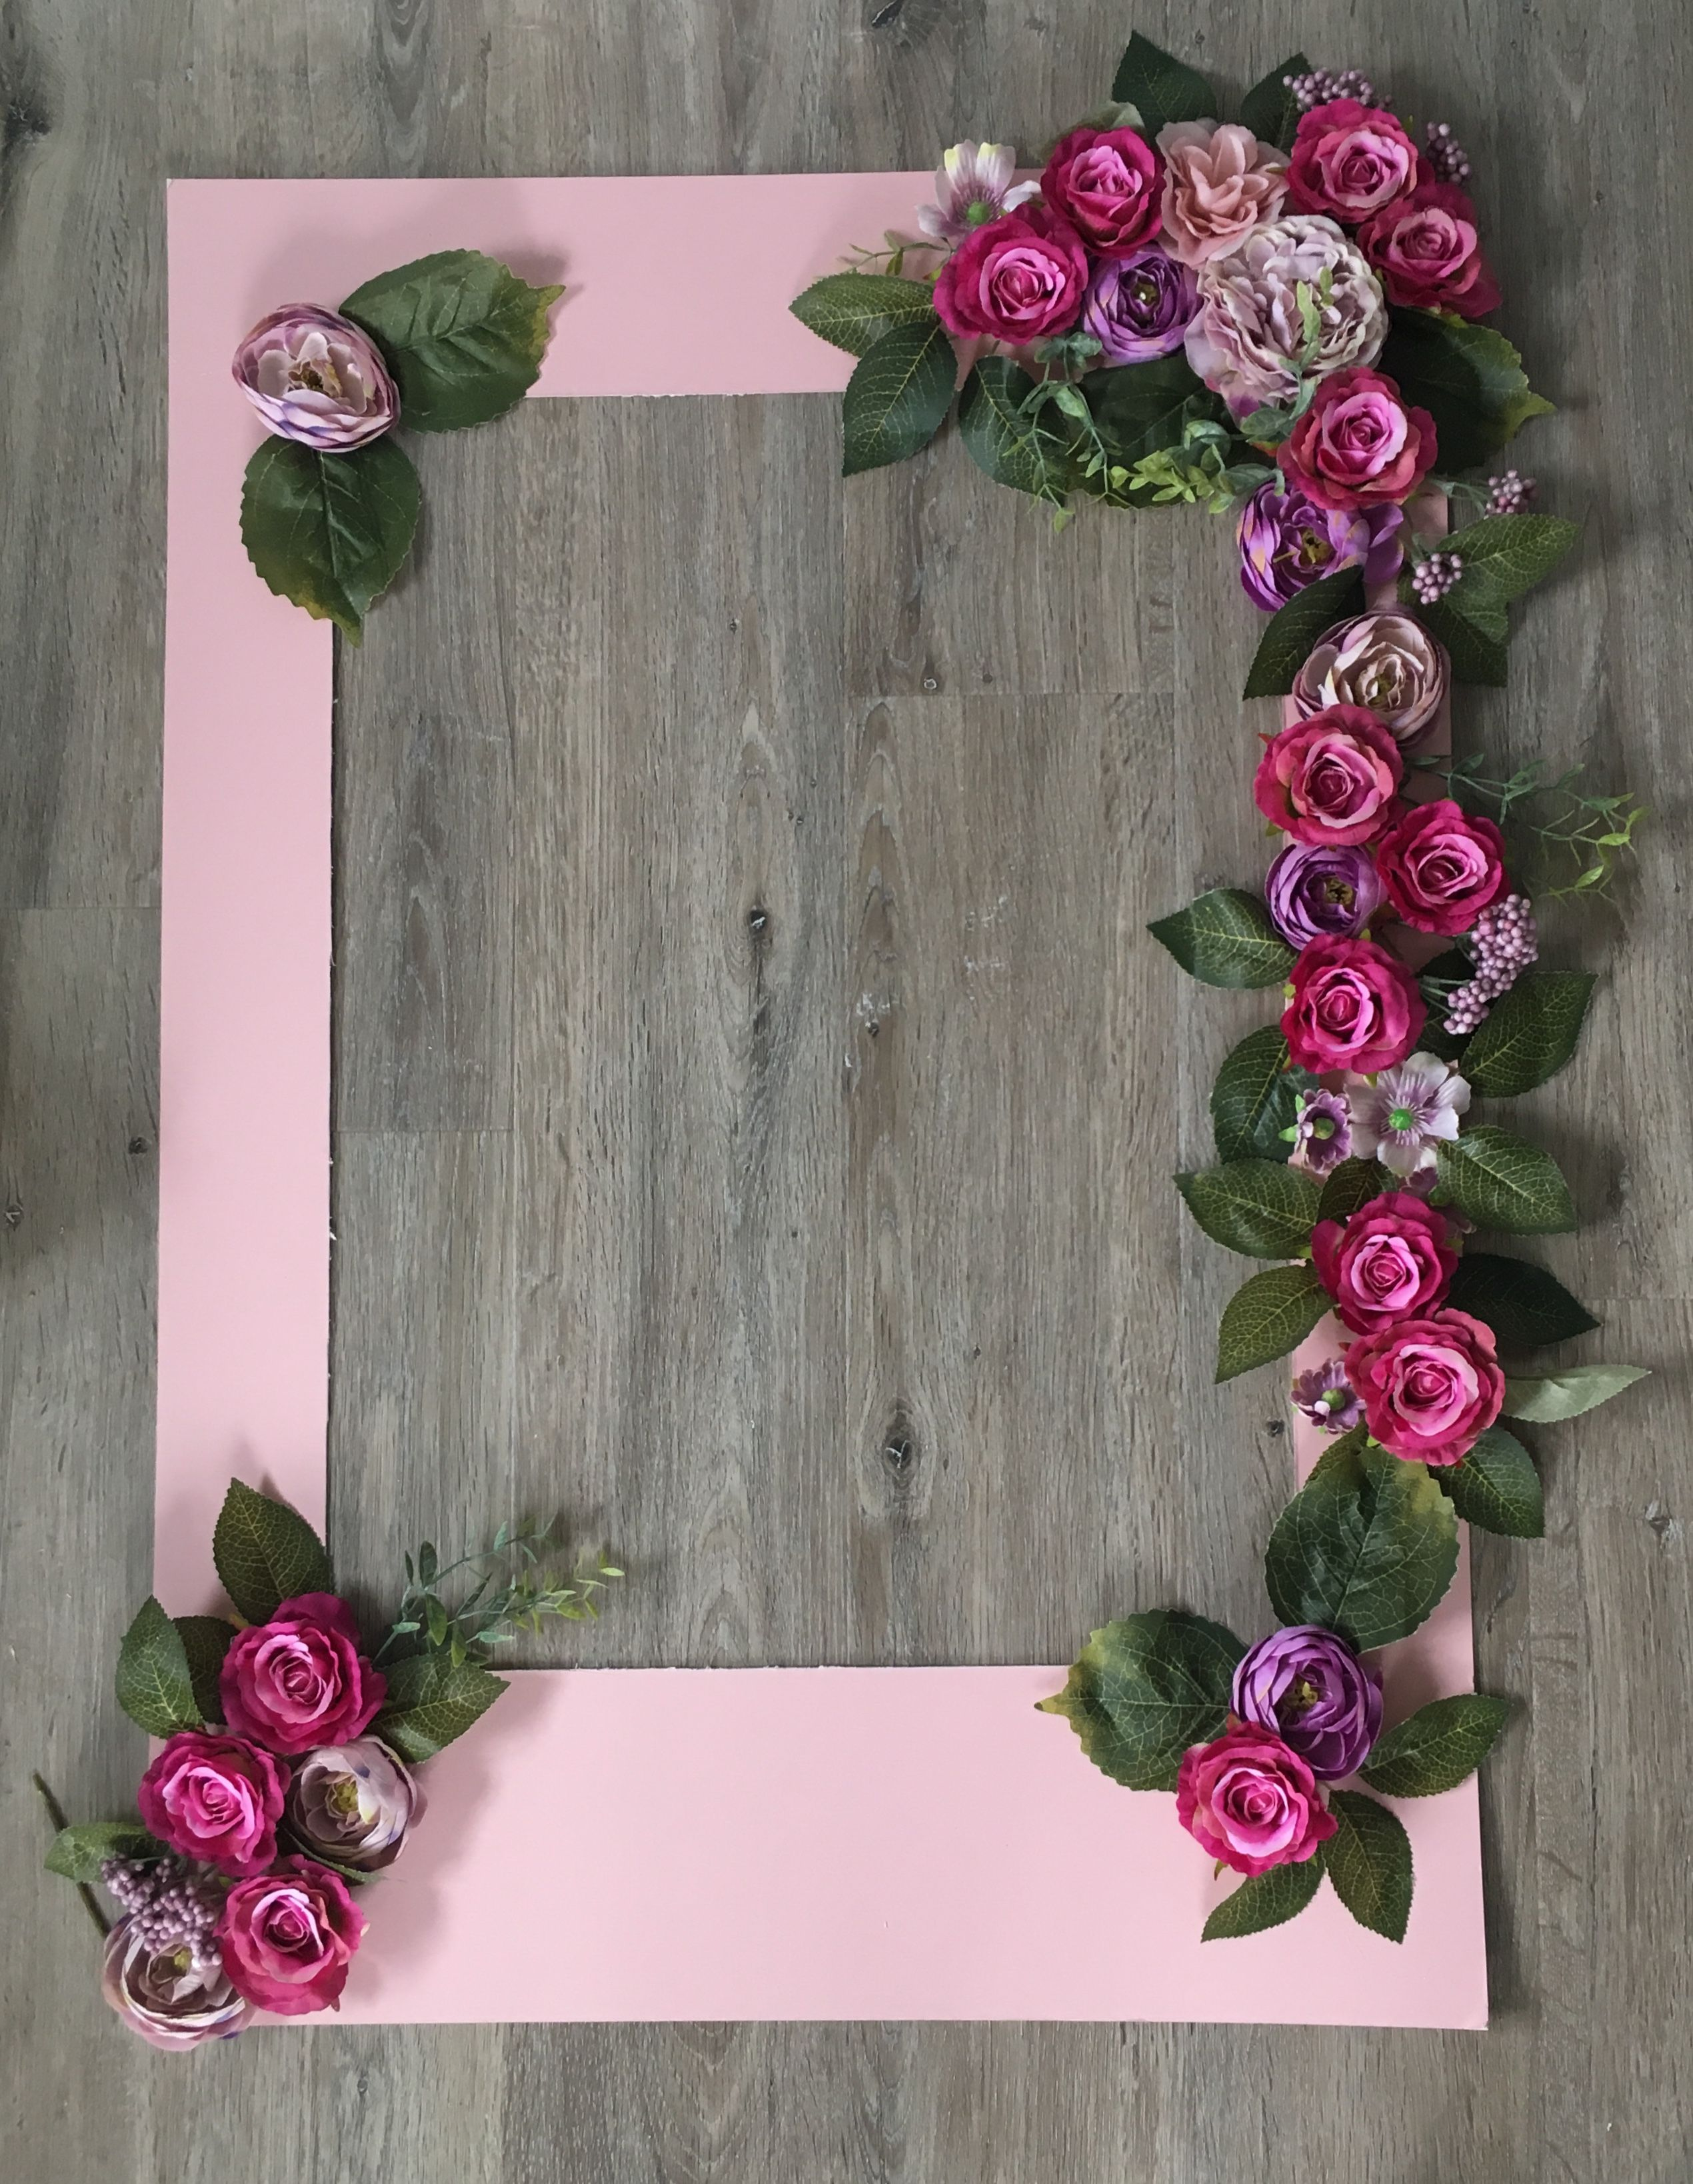 Photo frame, floral, photo booth, pink, flowers, hen, wedding, baby on cheapest home designs, city home designs, gulf coast home designs, manufactured house designs, country home designs, manufactured home designs, motor home designs, motor club designs, multi home designs, richmond home designs, michigan home designs, 4-plex home designs, vertical home designs, modular home designs, humble home designs, 2 story designs, eastern shore home designs, temporary home designs, cottage designs, bing home designs,